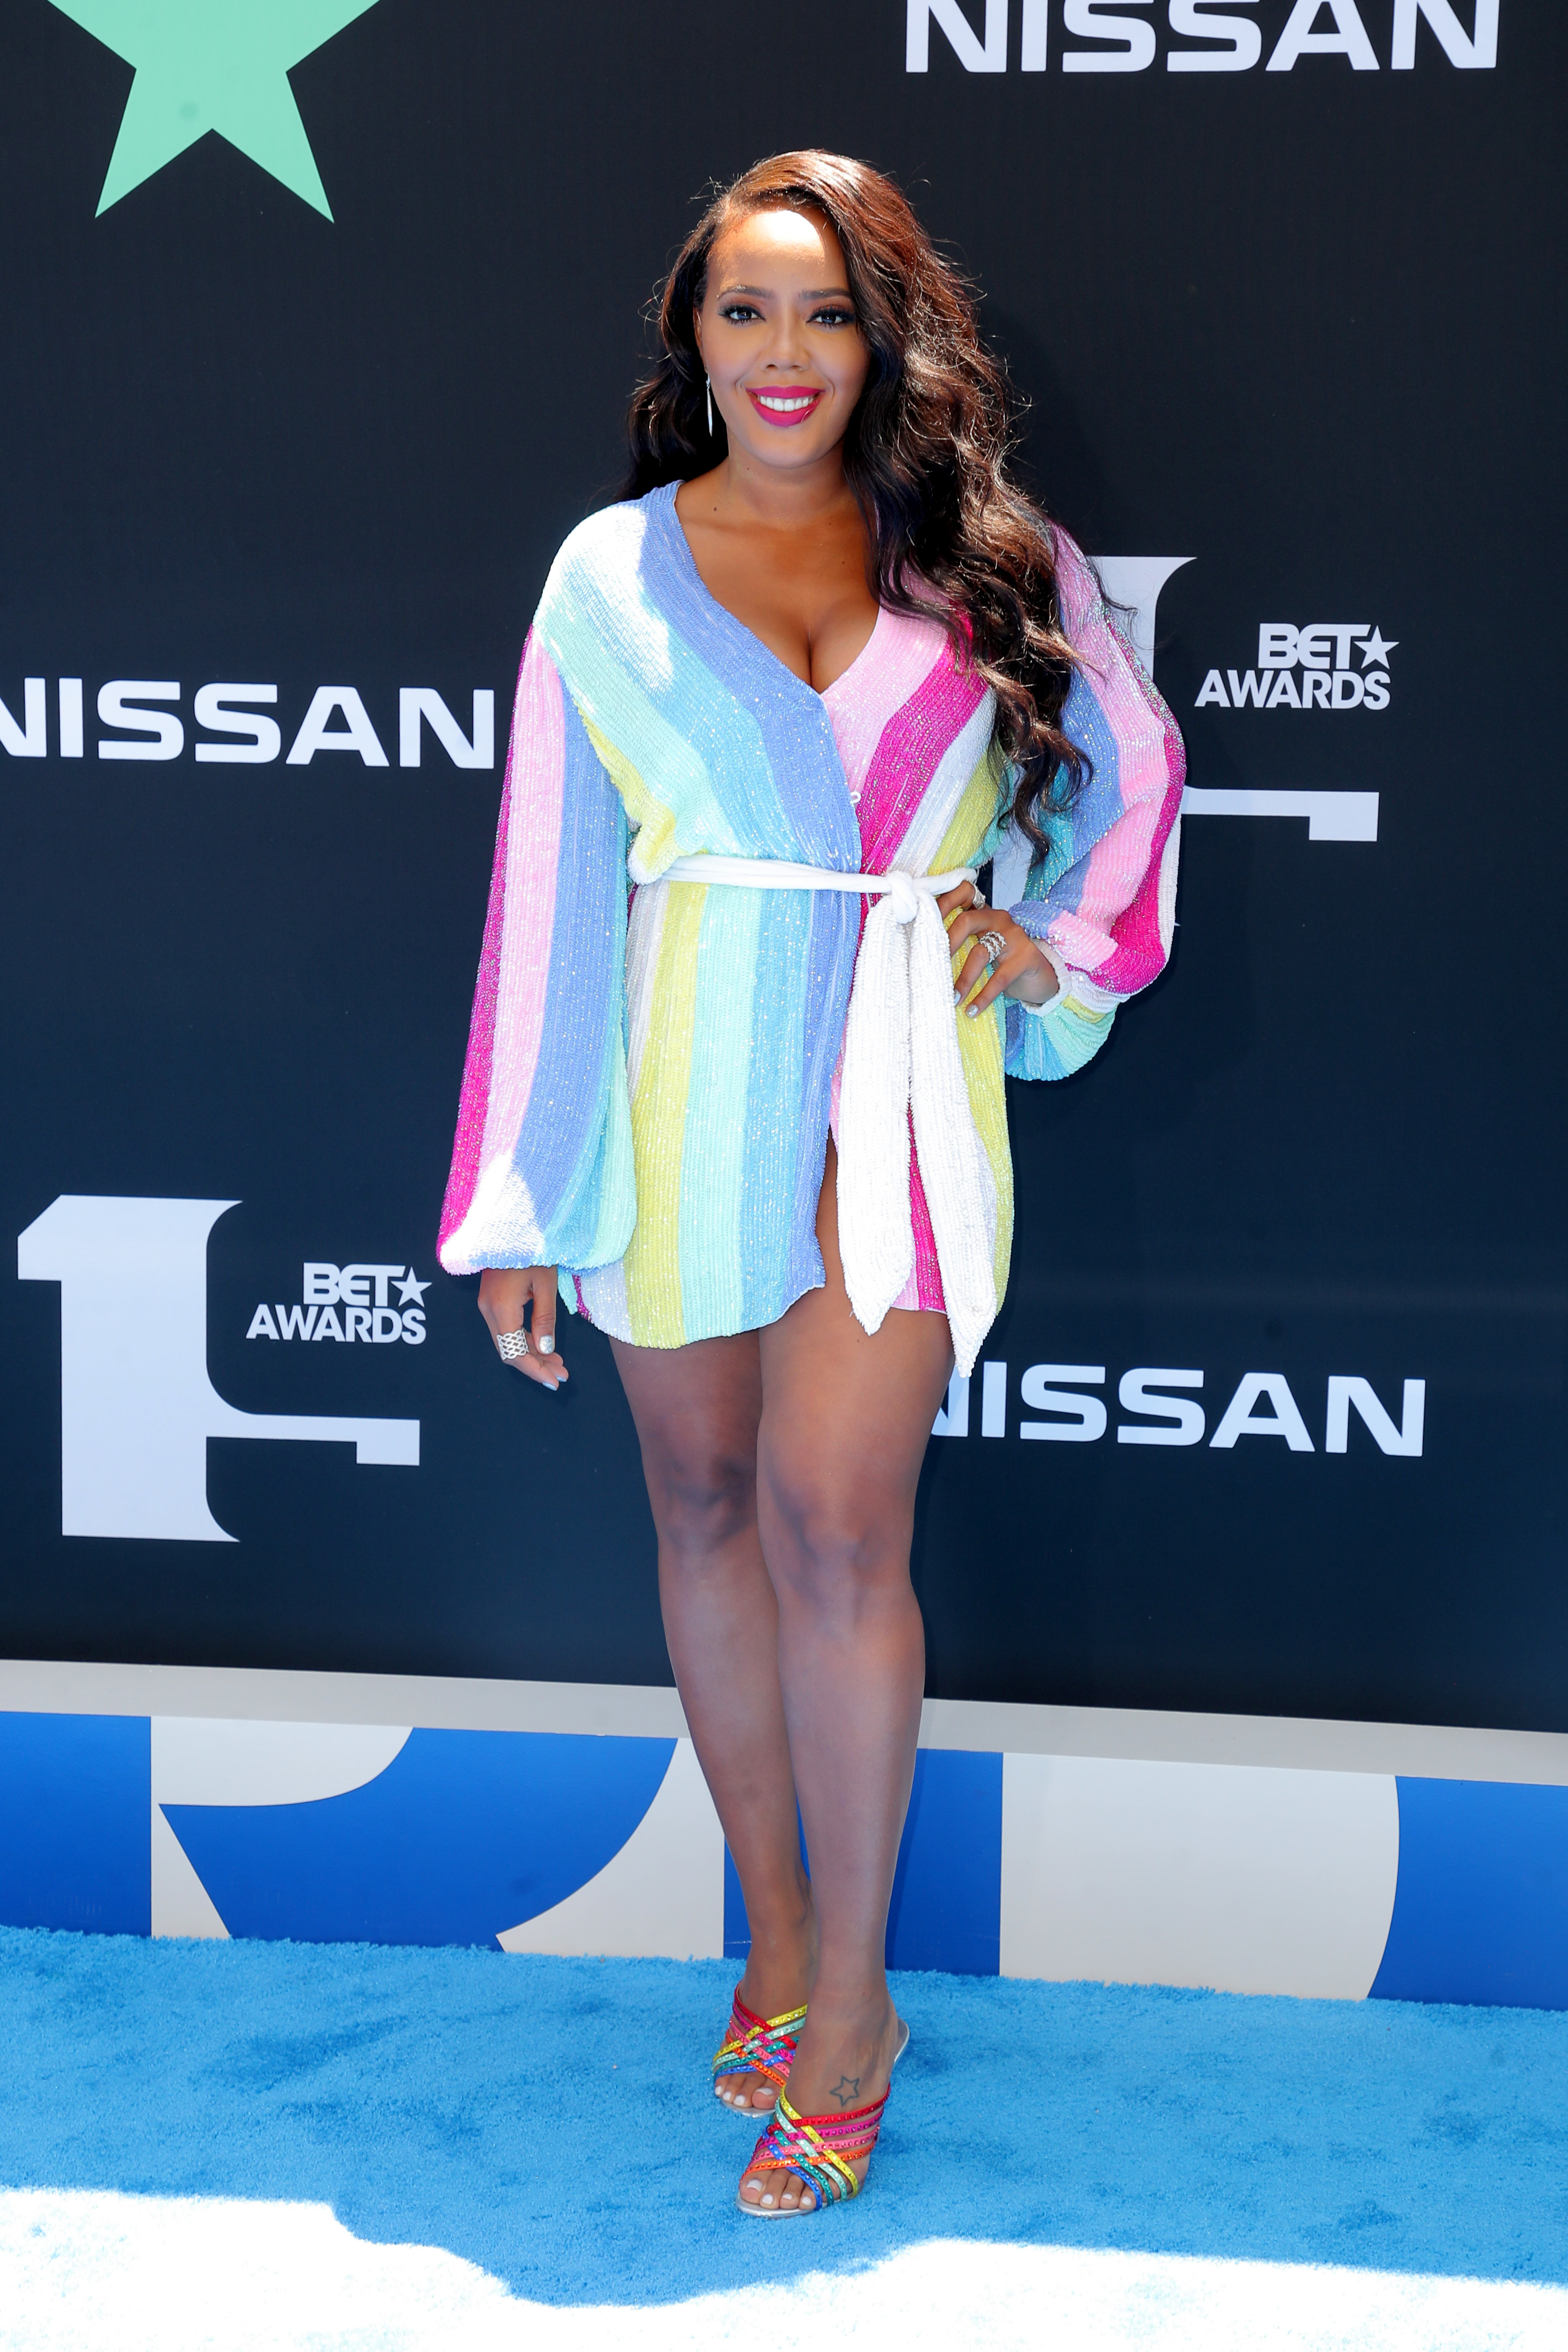 2019 BET Awards: See all the photos from the red carpet